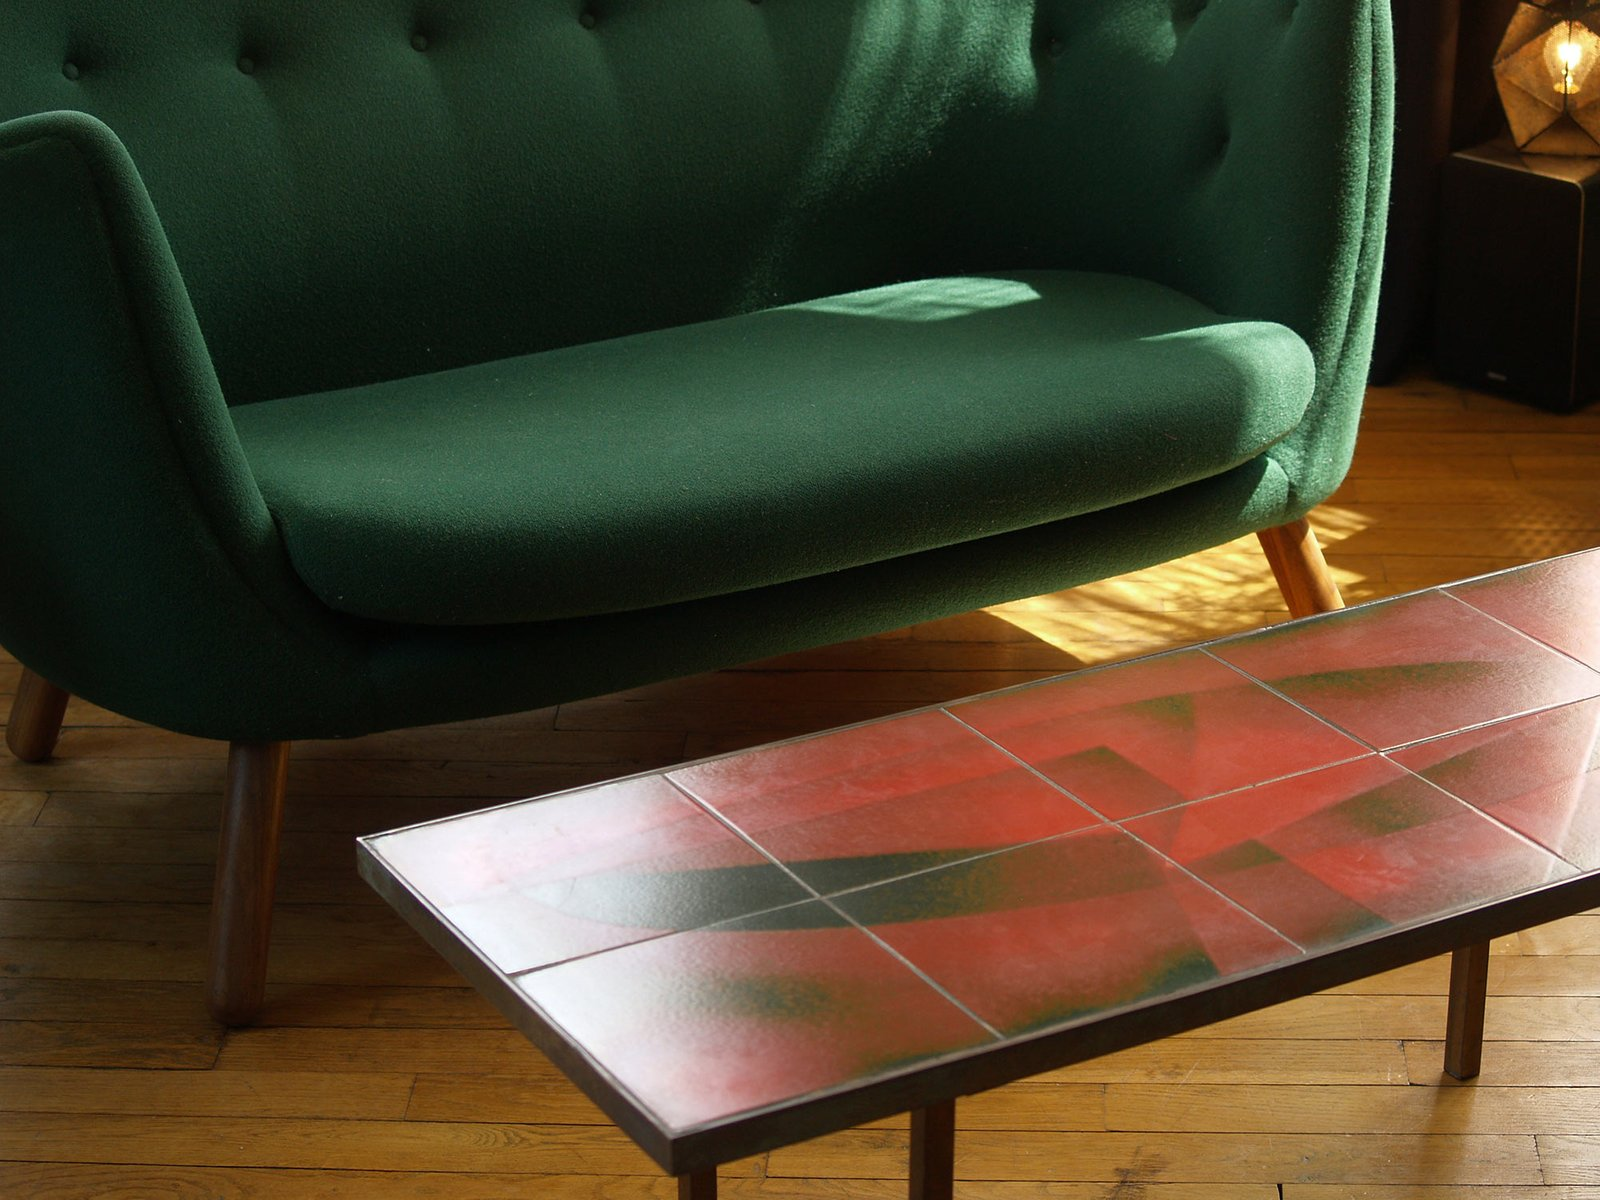 Abstract Ceramics Coffee Table by Jacques Lignier 1950s for sale